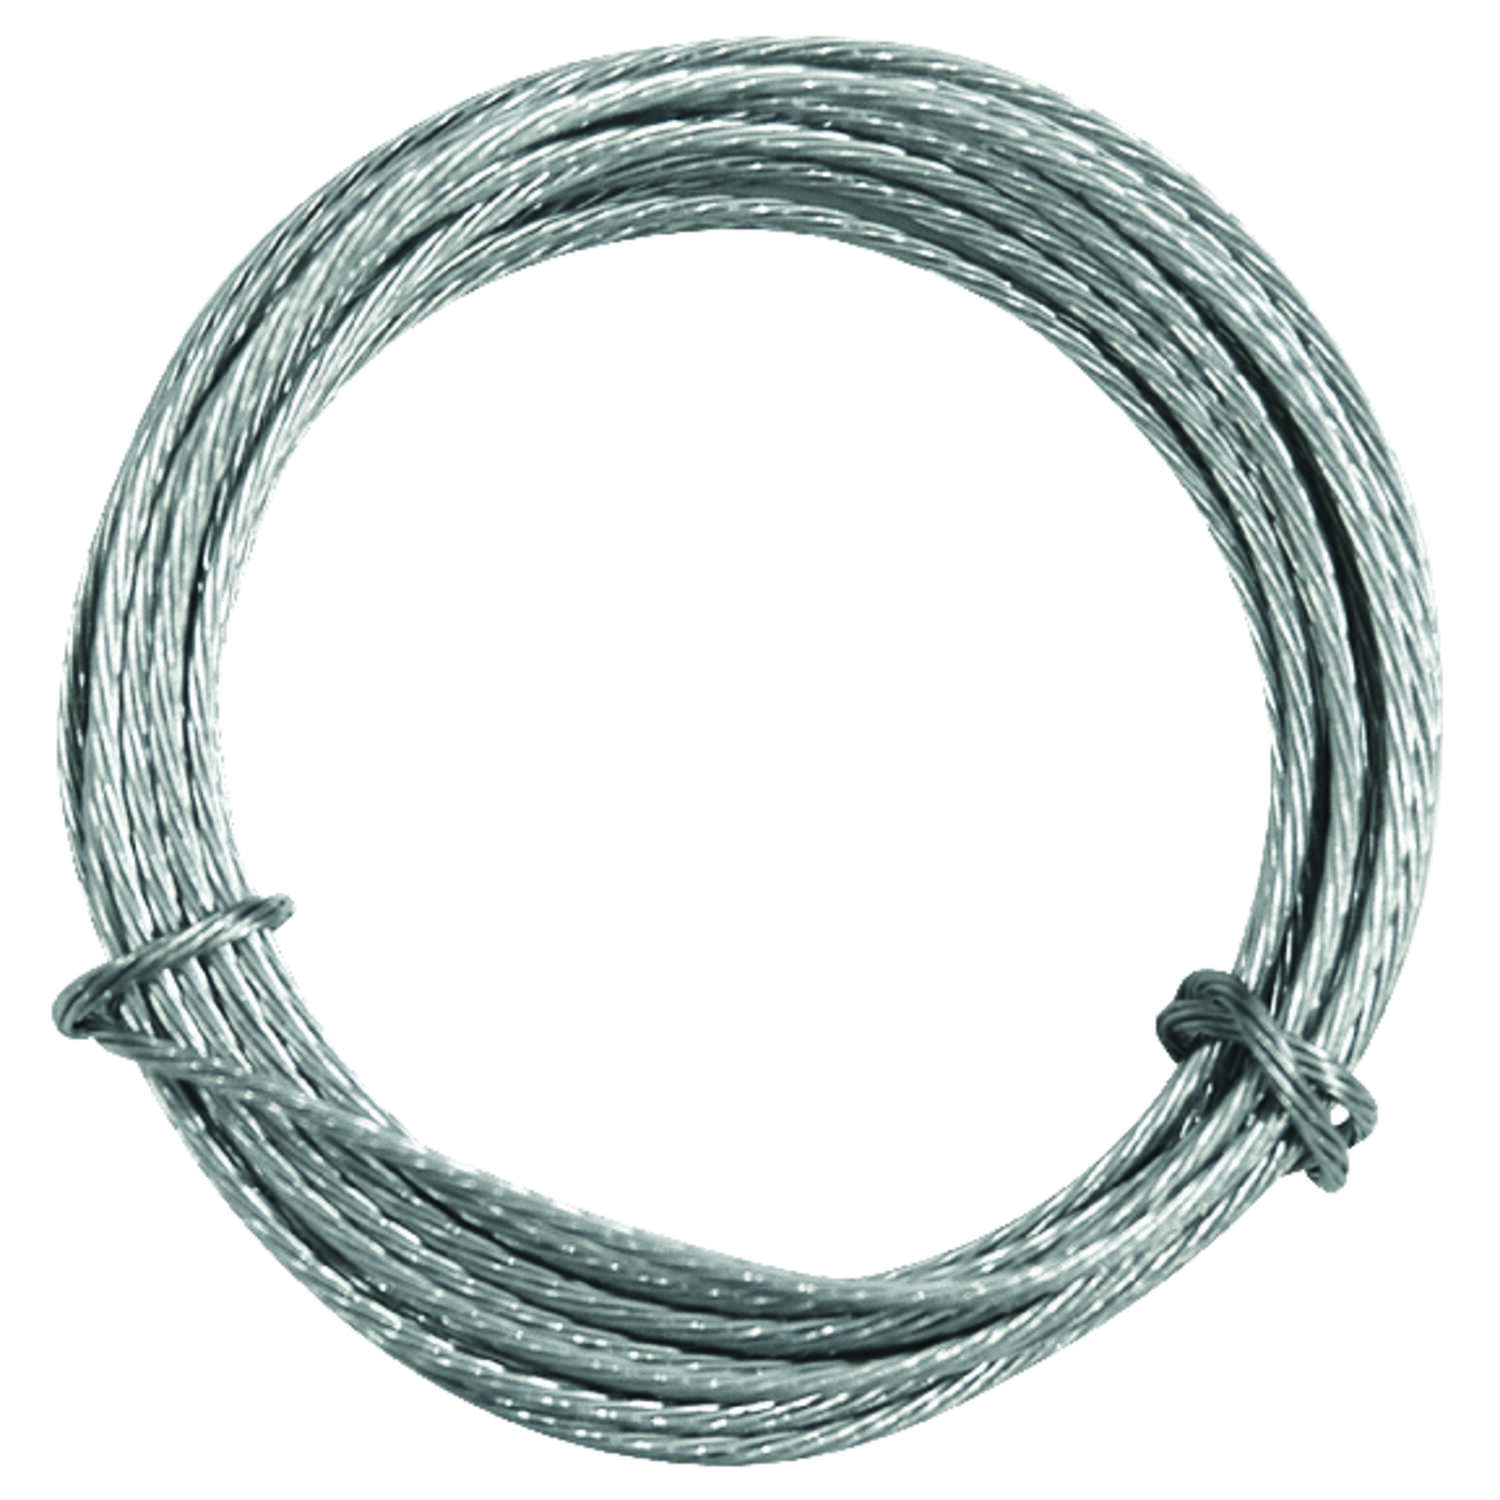 OOK Steel-Plated Picture Wire 50 lb. 1 pk